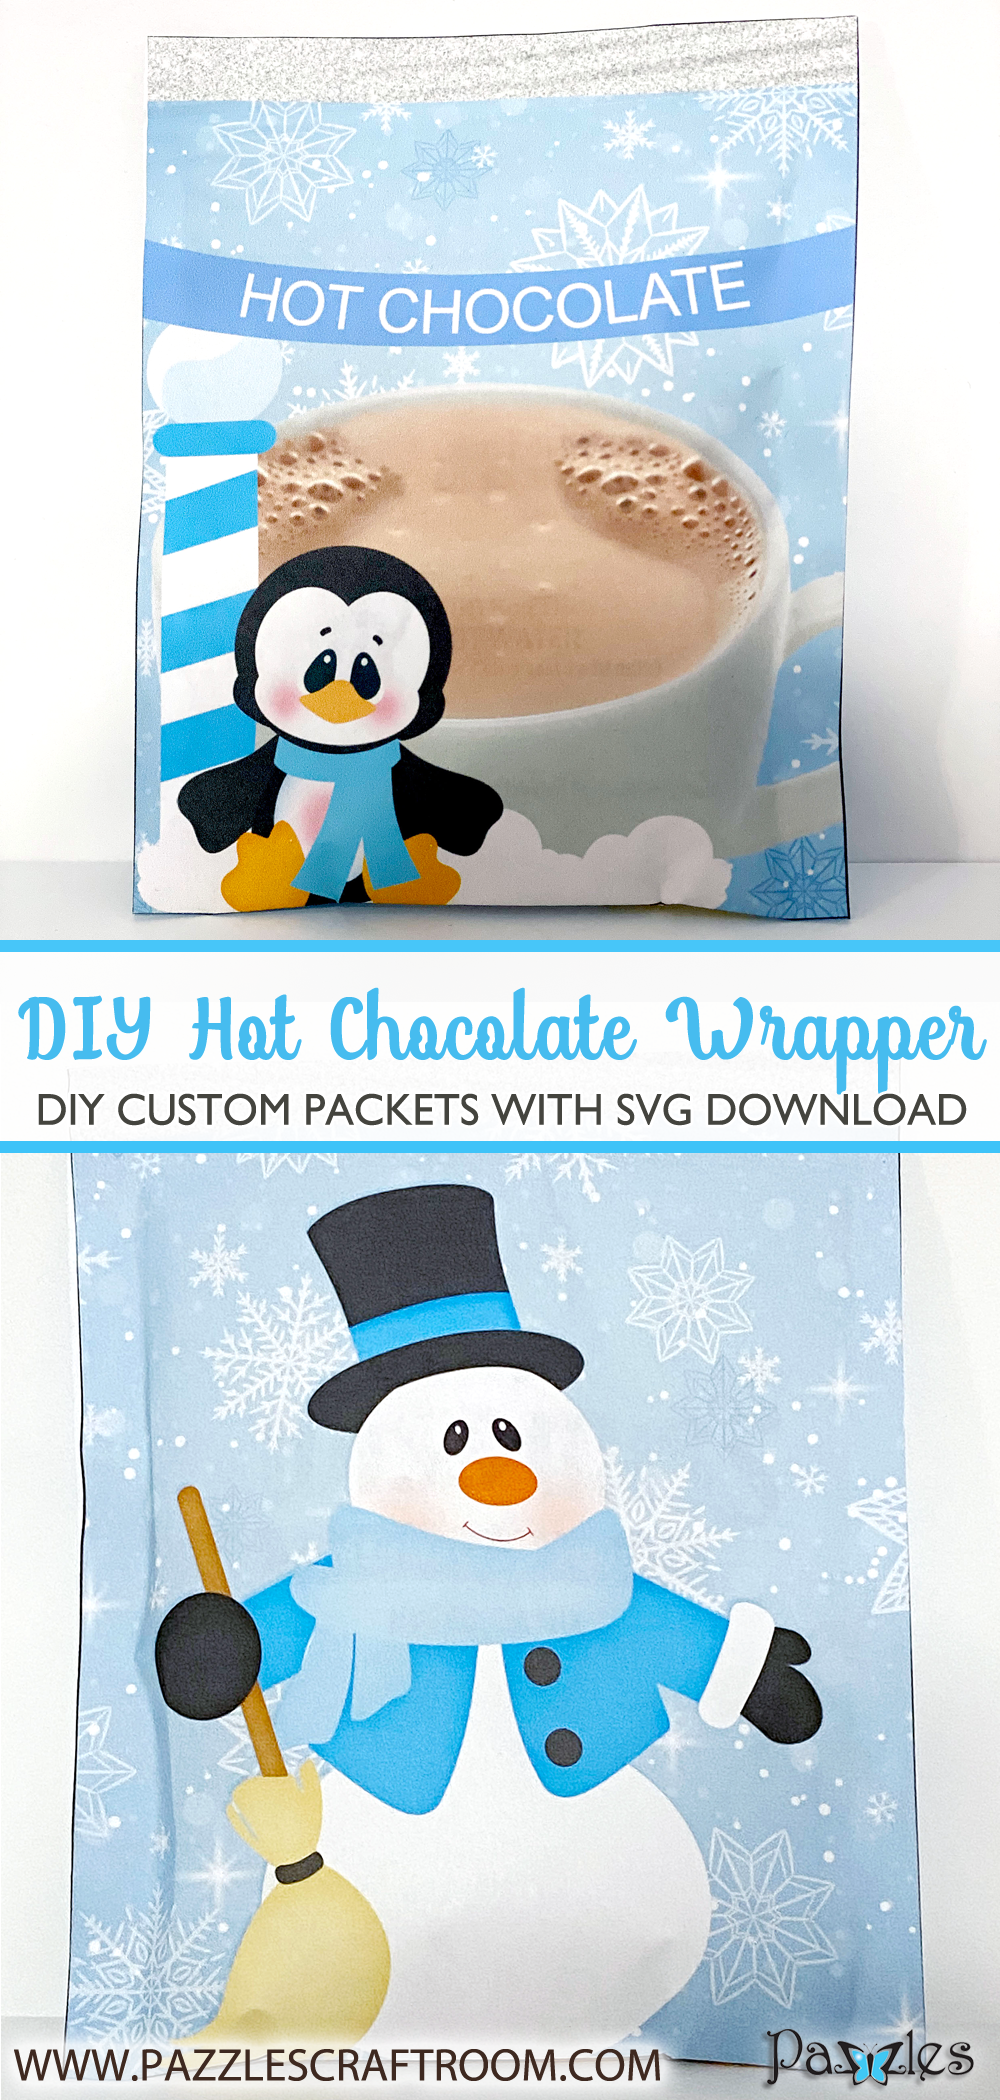 Pazzles DIY Hot Chocolate Wrappers with SVG download. Compatible with all major electronic cutters including Pazzles Inspiration, Cricut, and Silhouette Cameo. Design by Lisa Reyna.